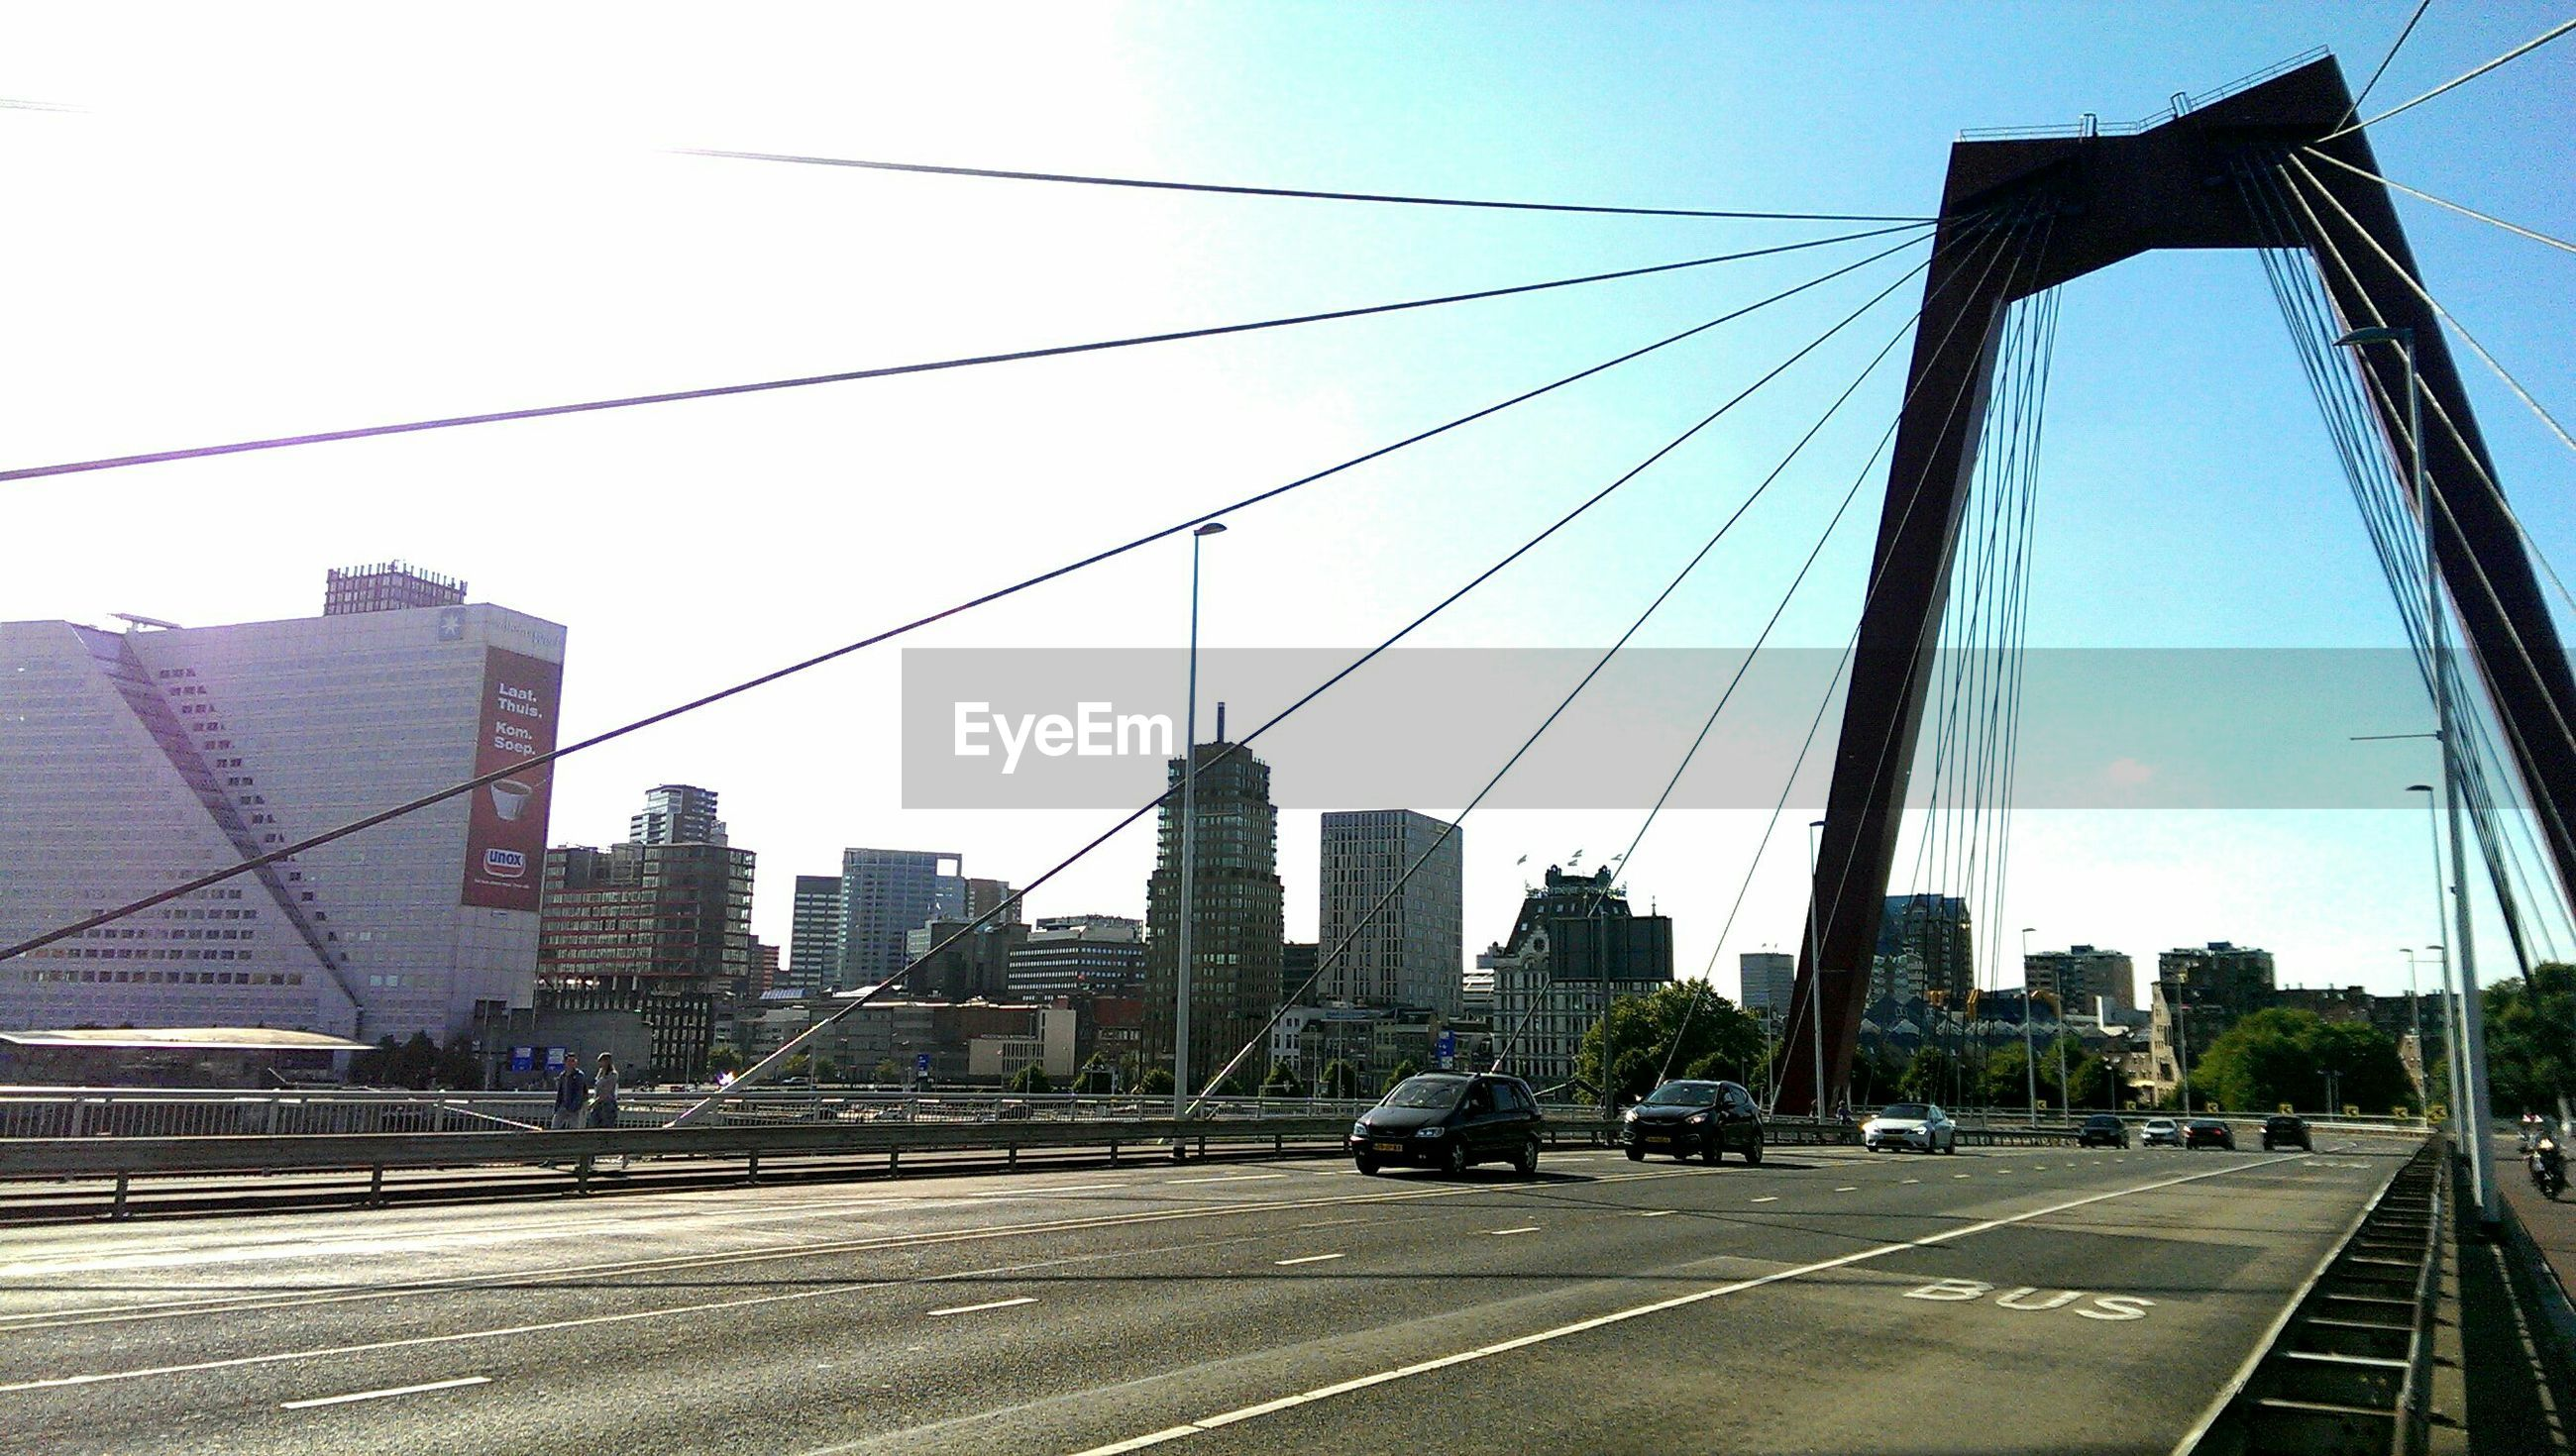 architecture, built structure, city, building exterior, transportation, skyscraper, road, clear sky, car, connection, cityscape, city life, bridge - man made structure, tower, modern, tall - high, street, sky, capital cities, office building